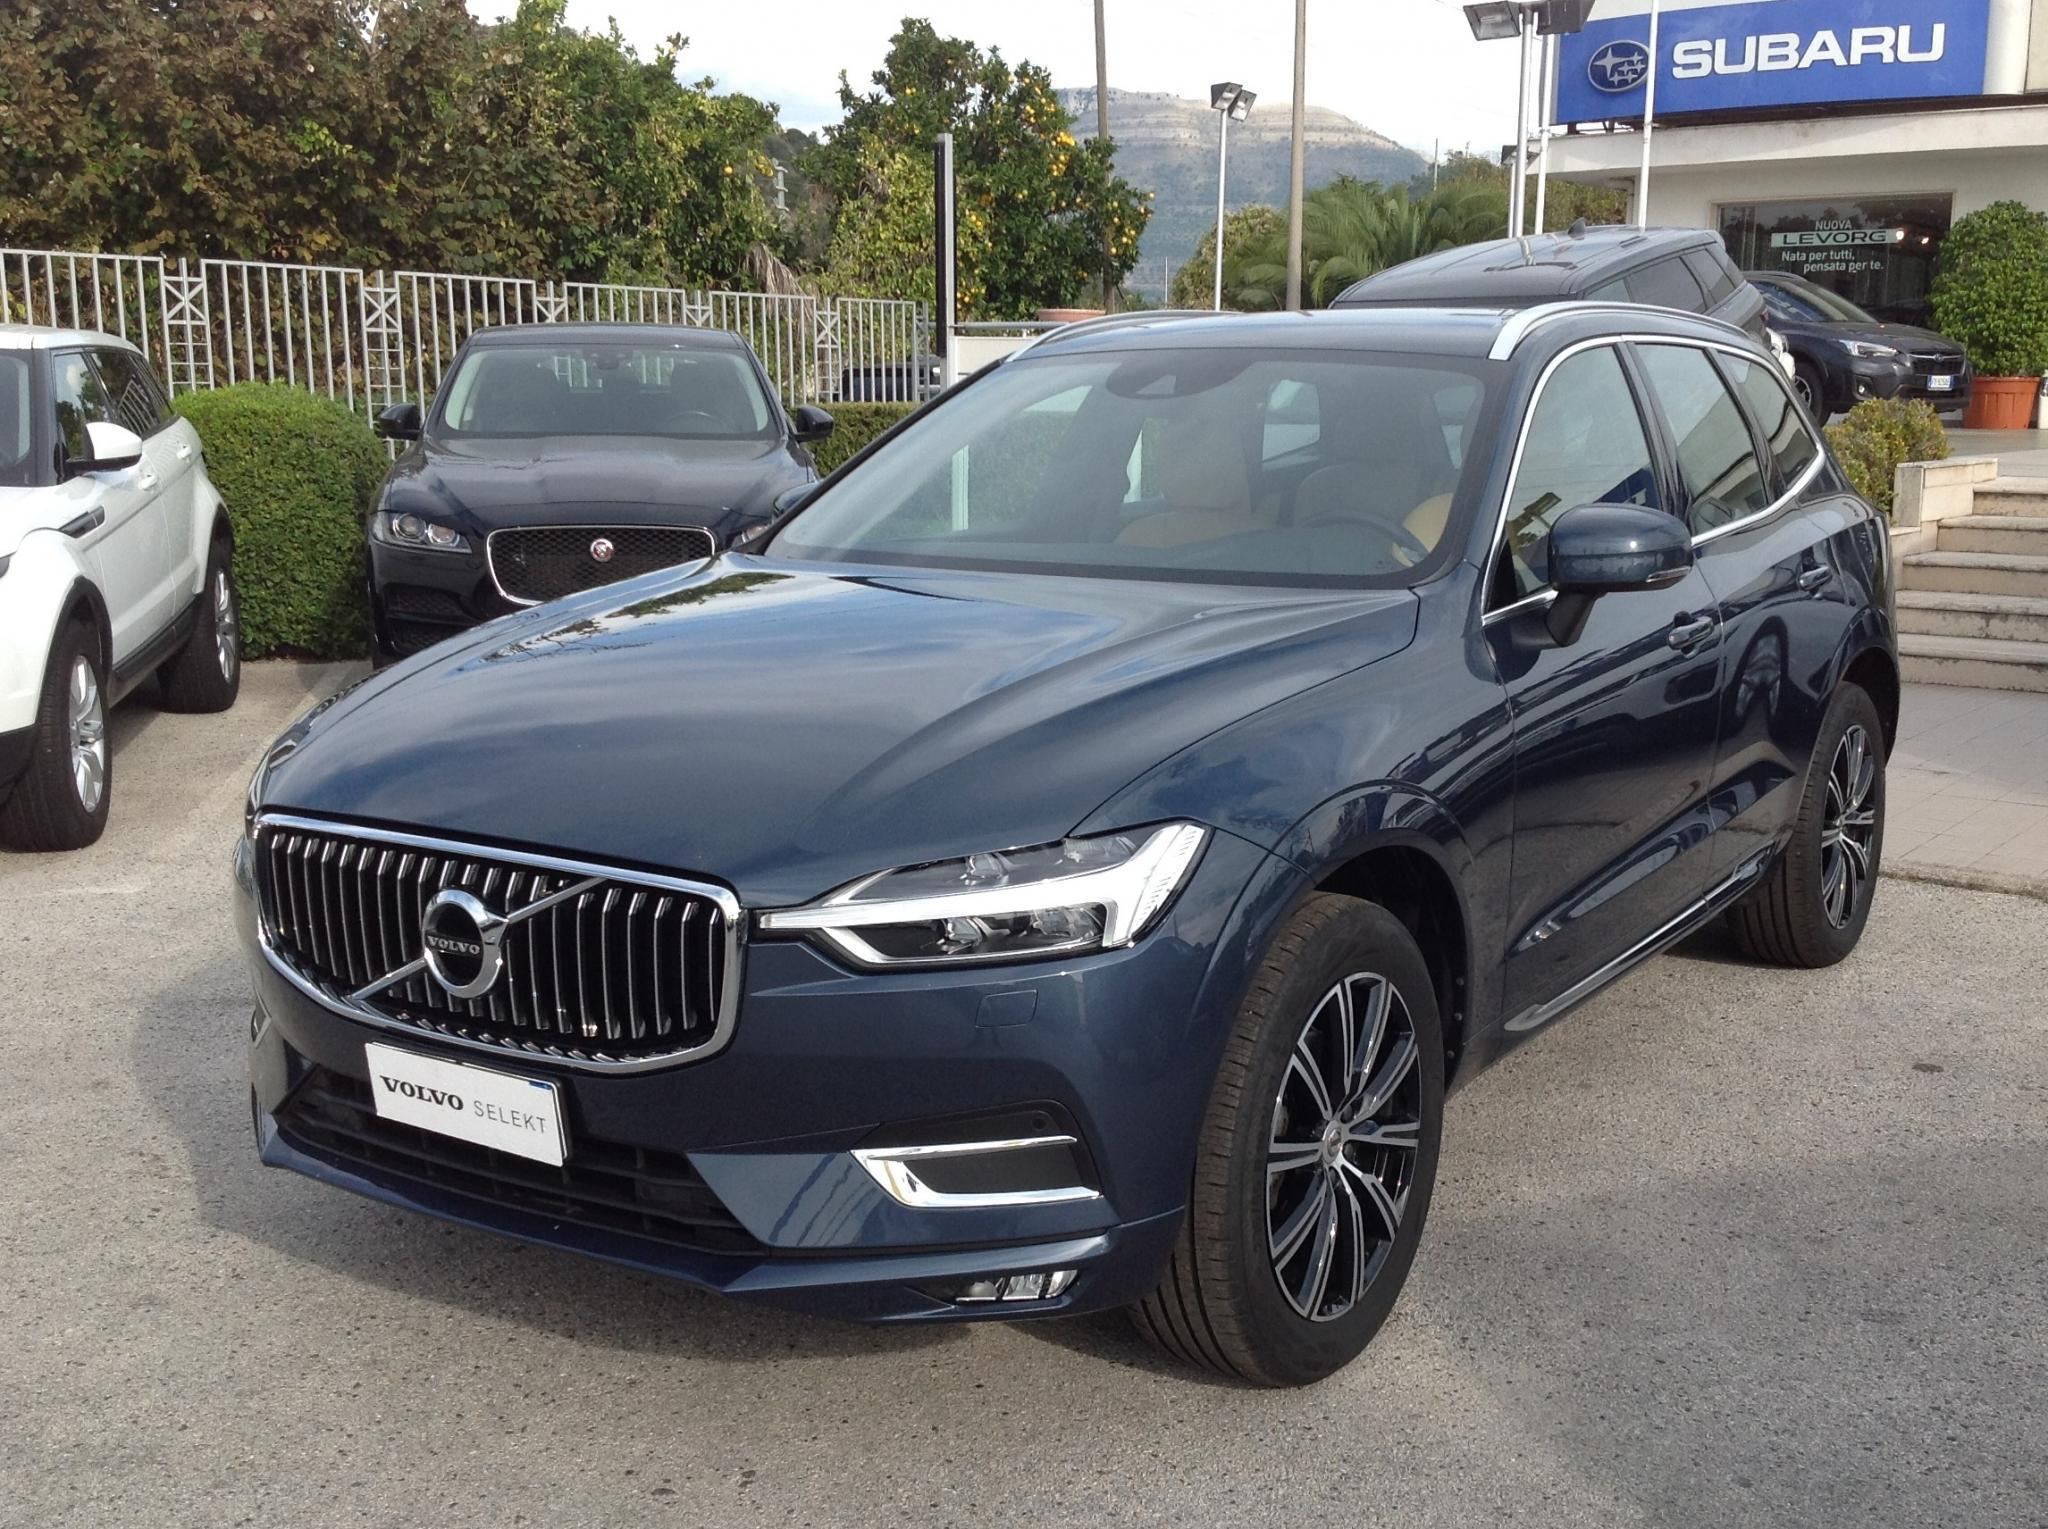 Volvo XC 60 D4 Geartronic Inscription